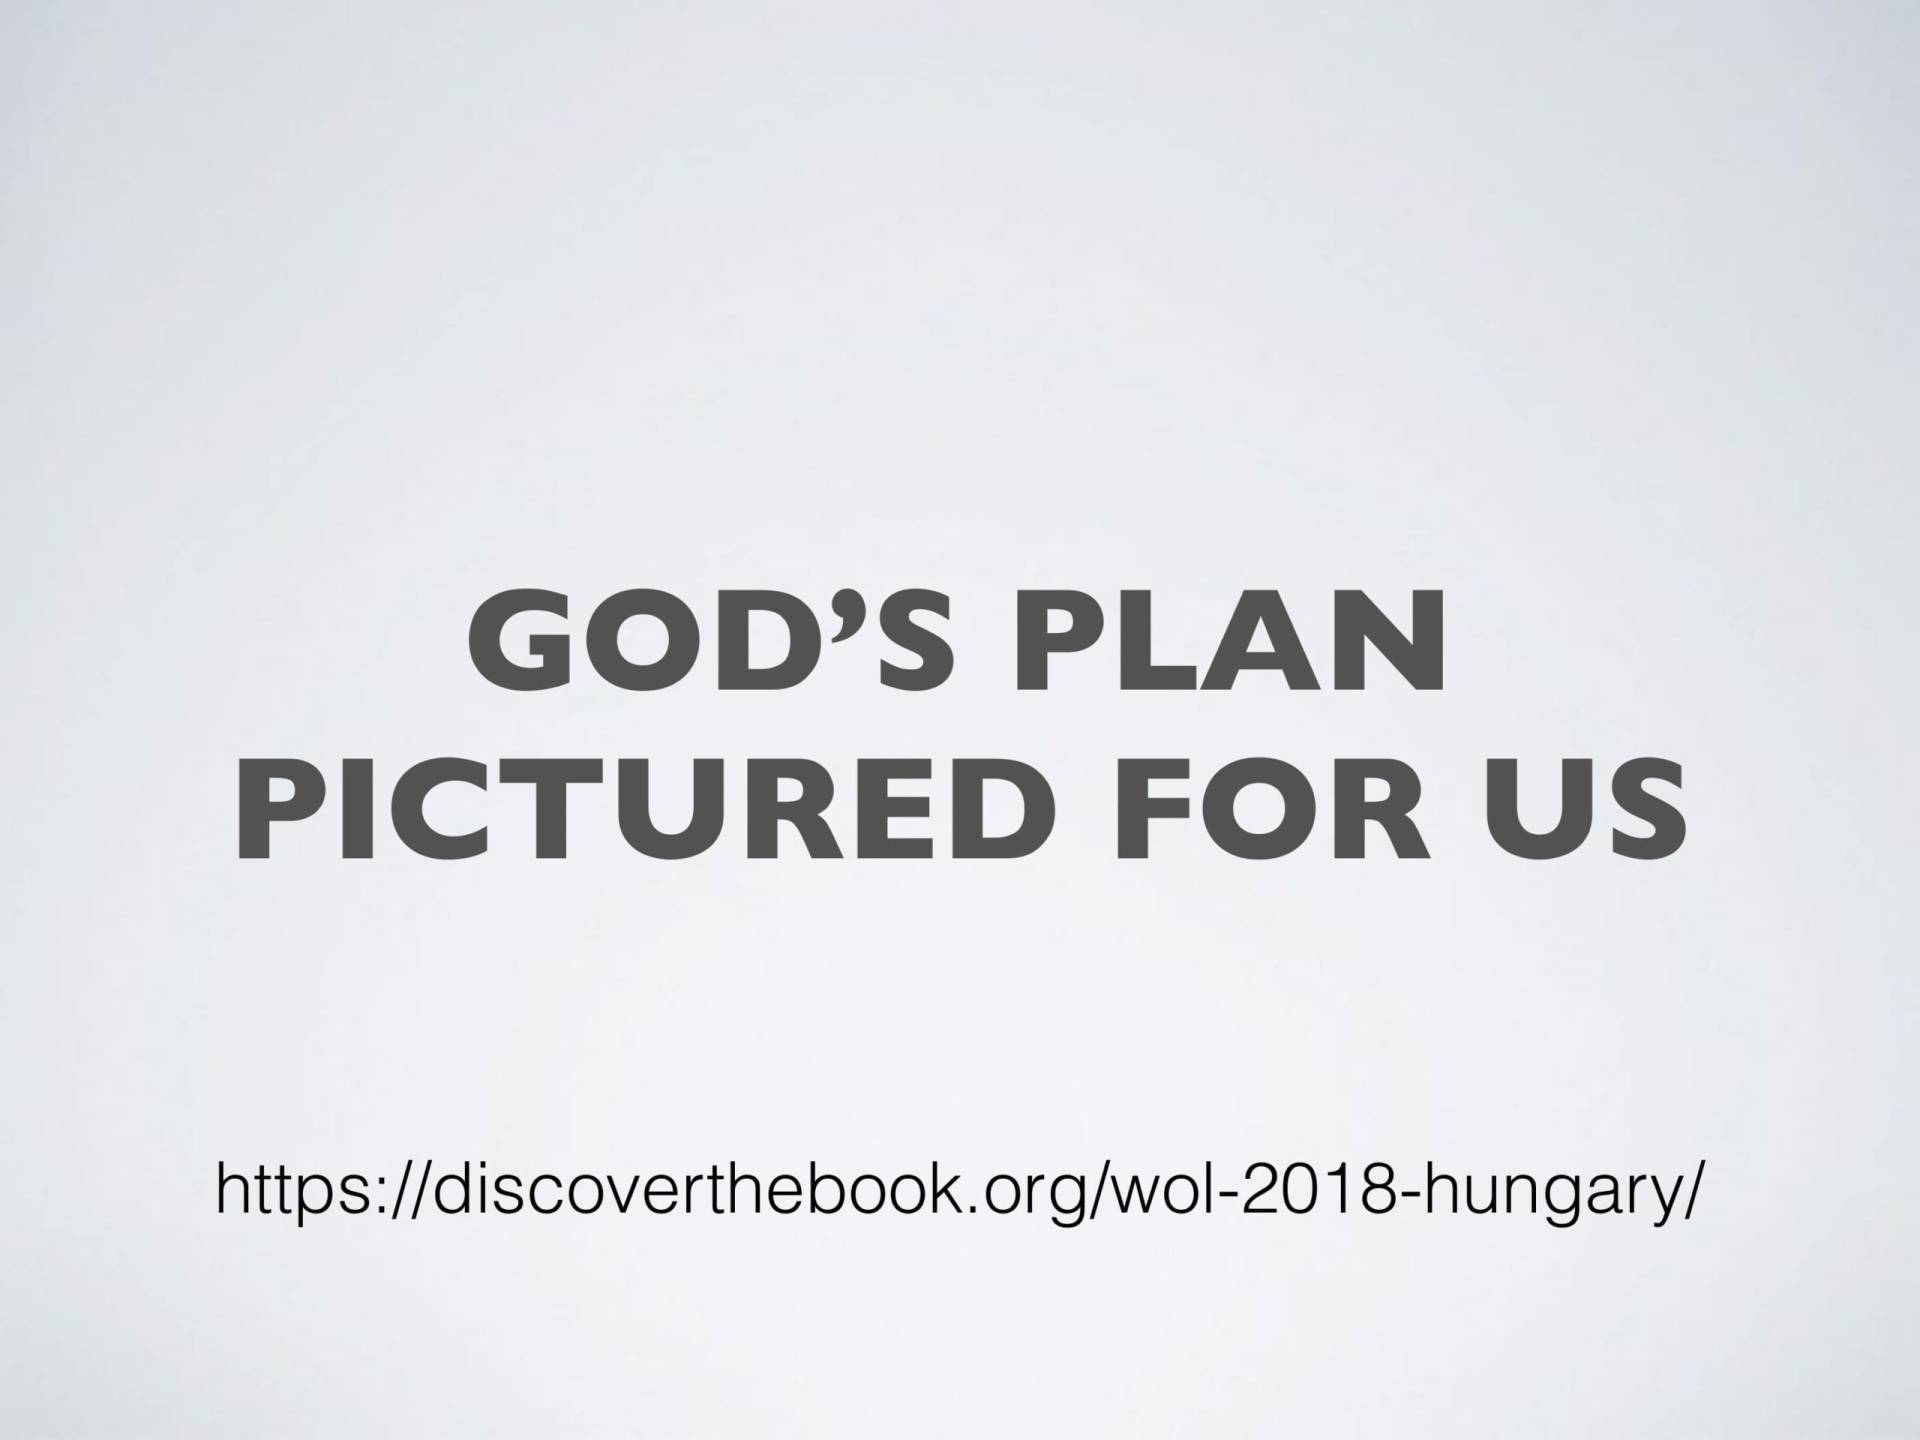 WOL2018 Hungary - 02 - Christ's Last Words To His Church - God's Planned Picture For Us (14)